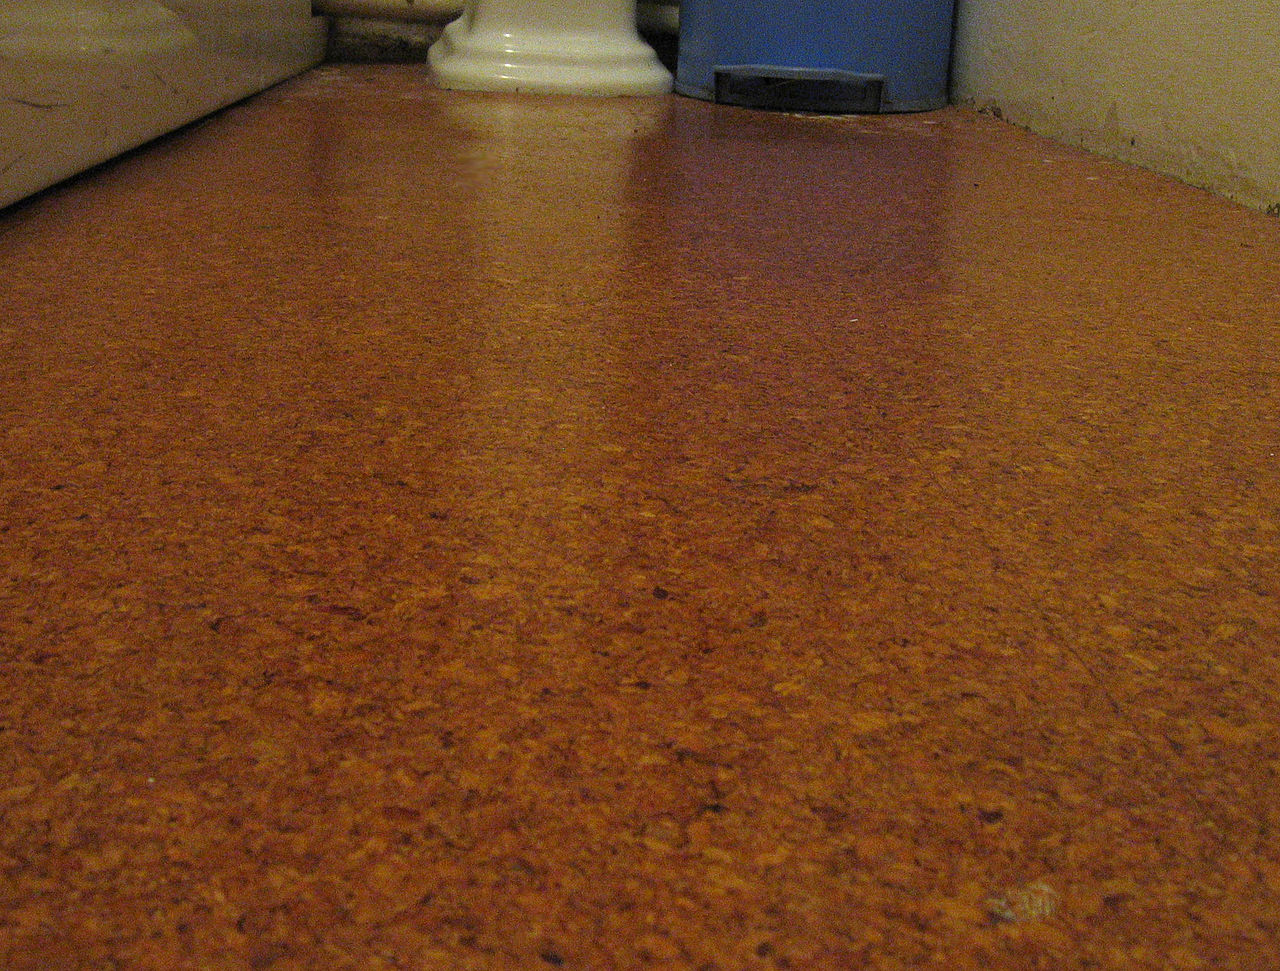 cork bathroom flooring file cork bathroom flooring jpg wikimedia commons 12522